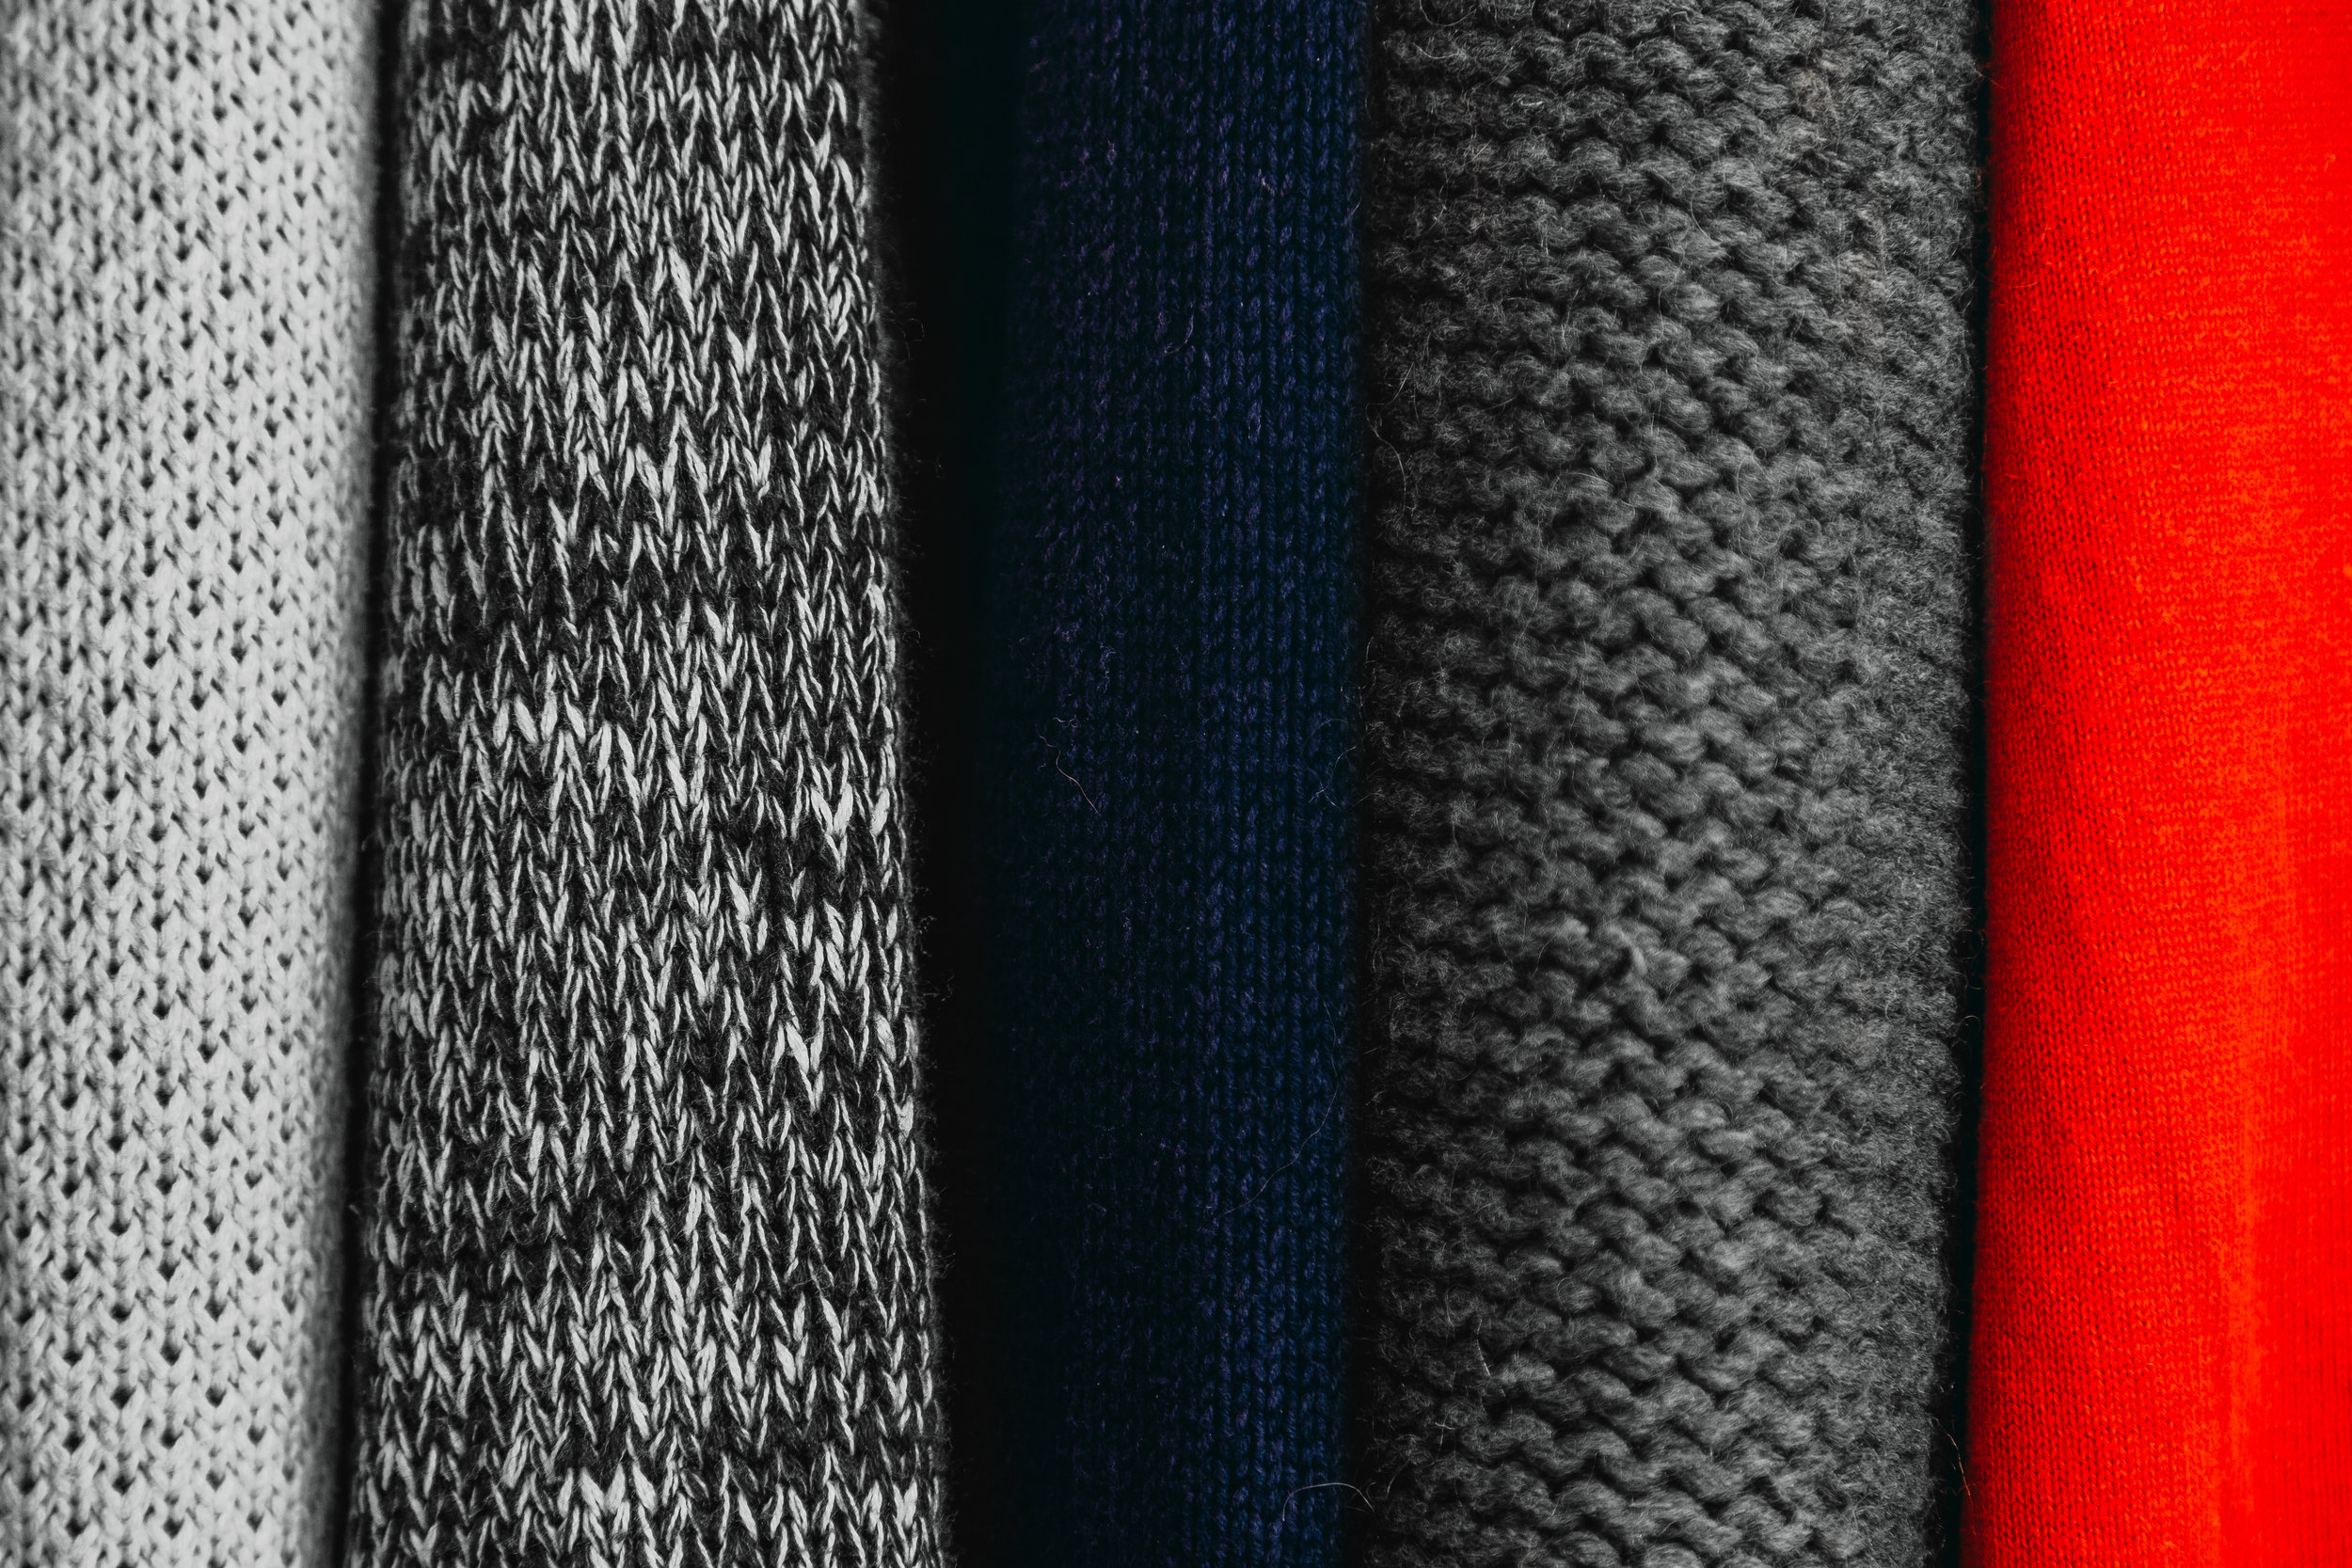 clothes-sweater-colors-wardrobe.jpg